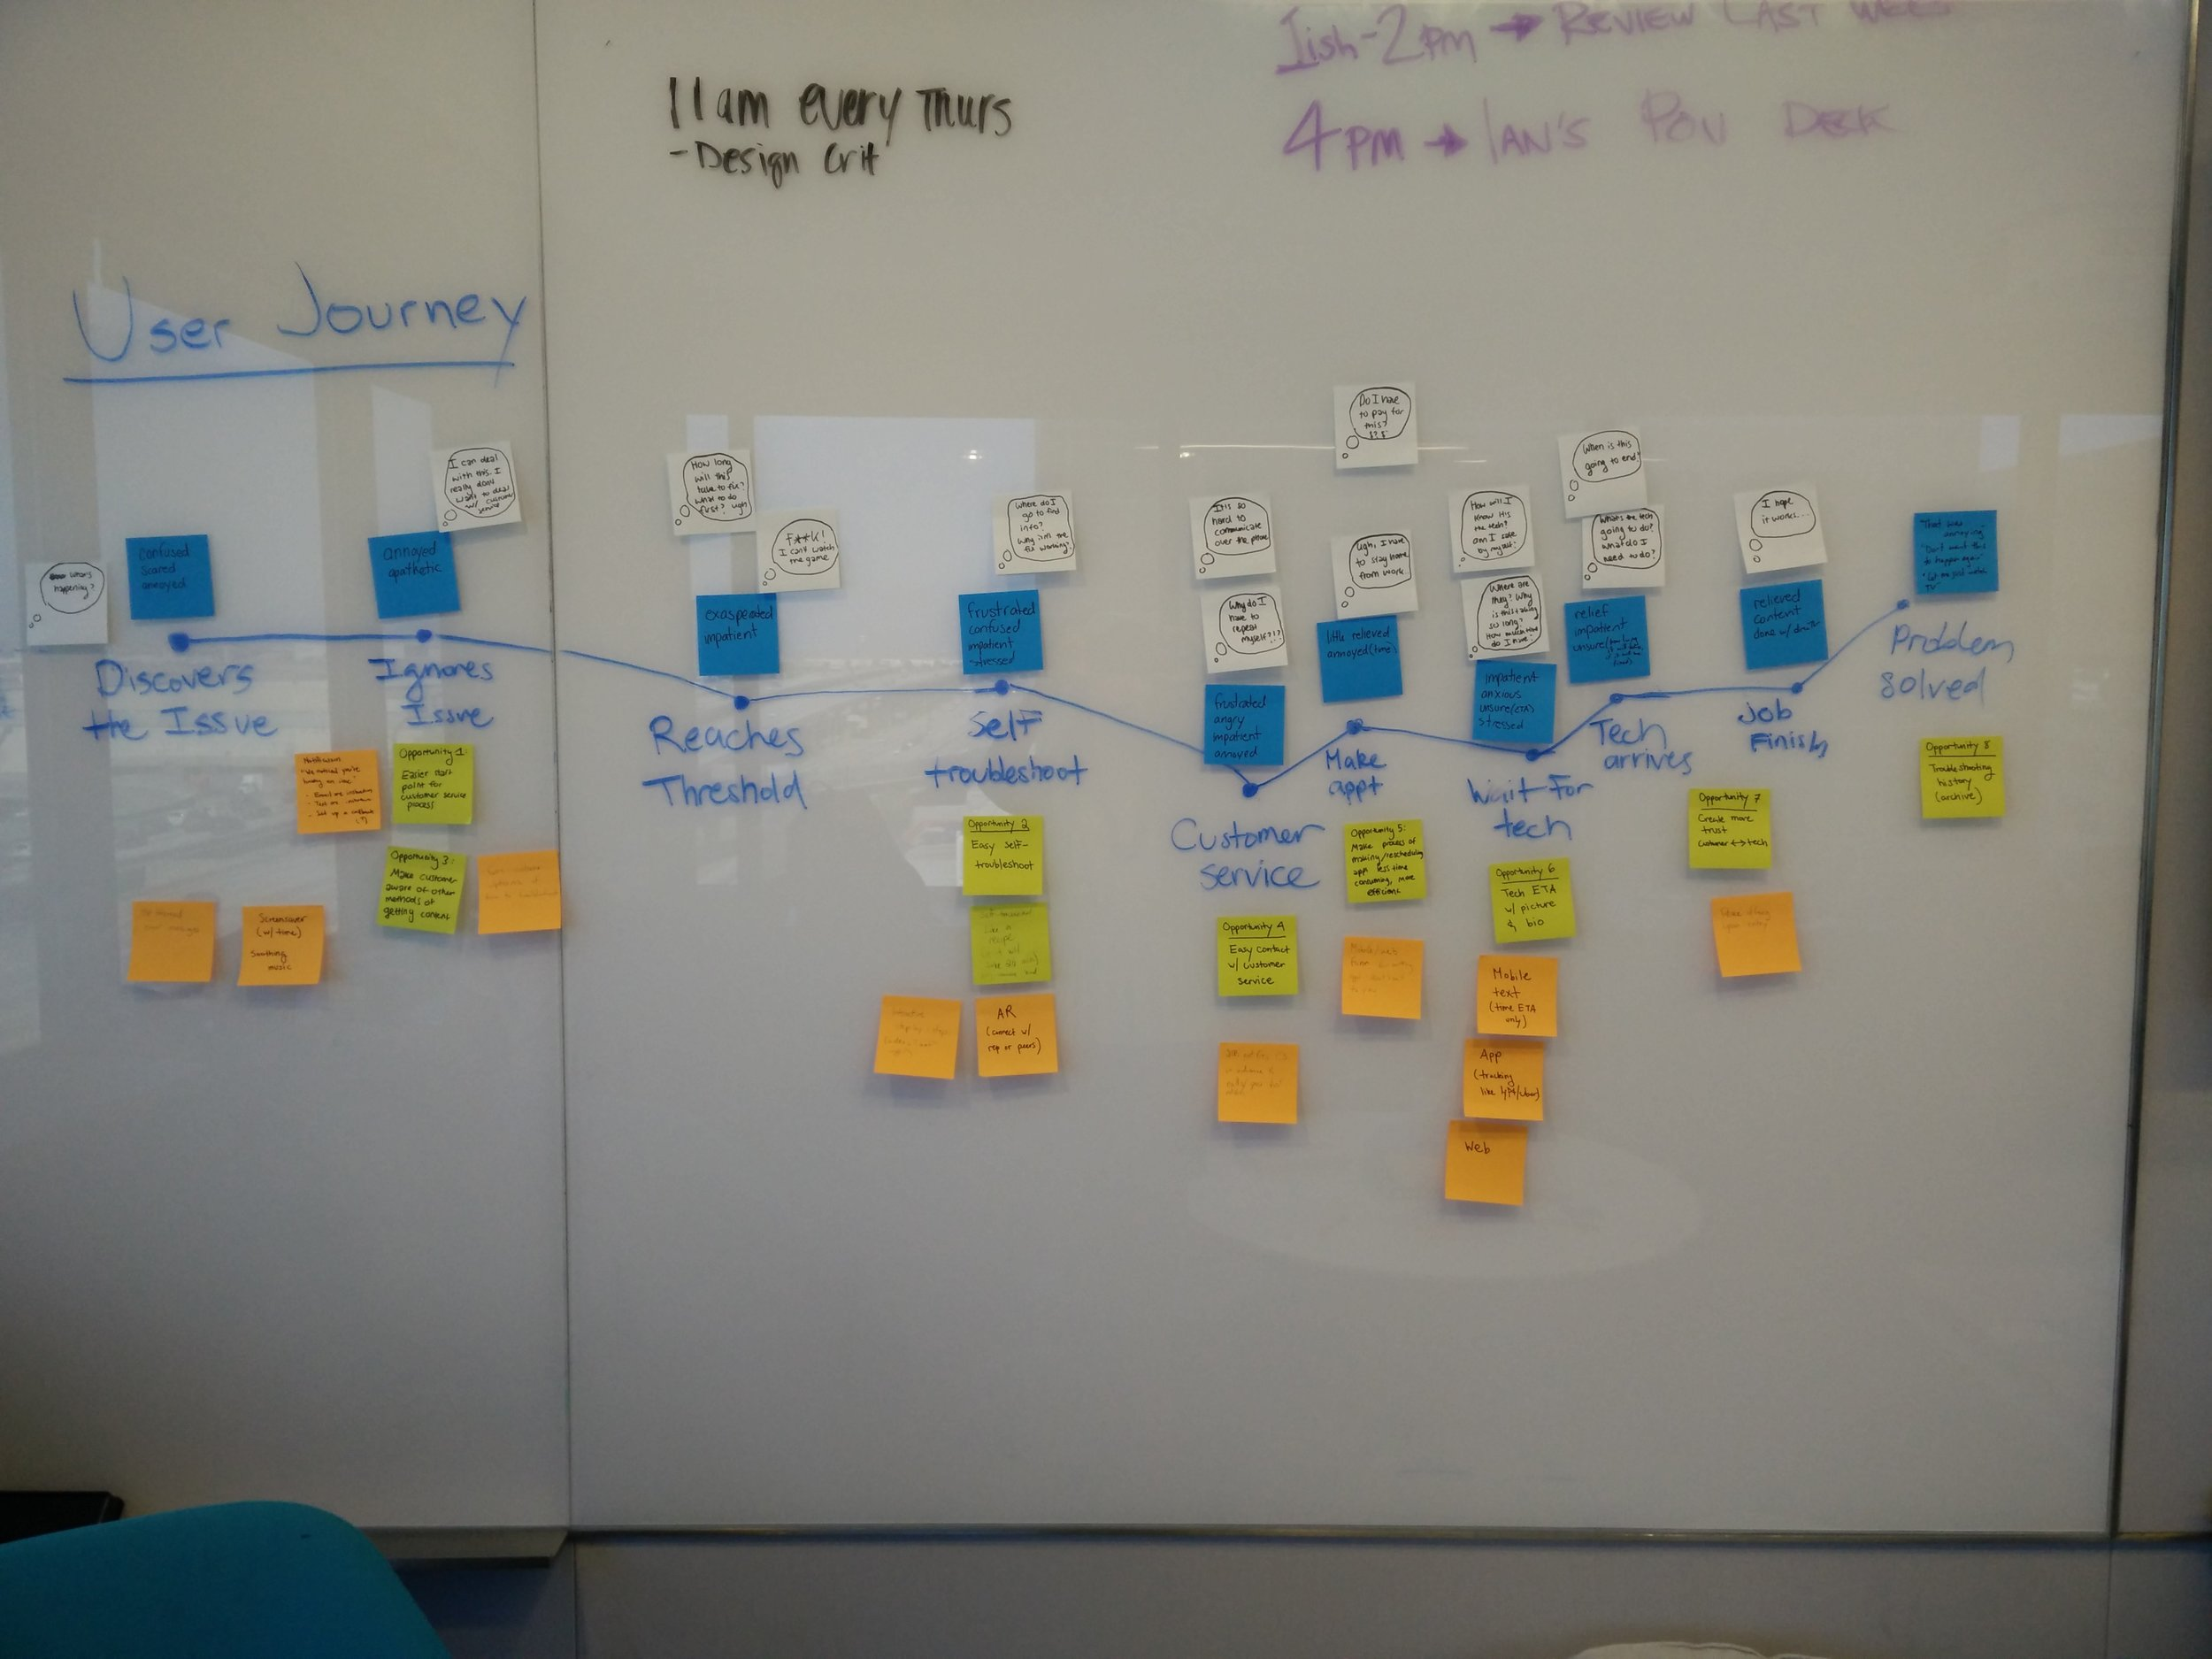 Tracking thoughts, opportunities, and solutions during a user's journey.